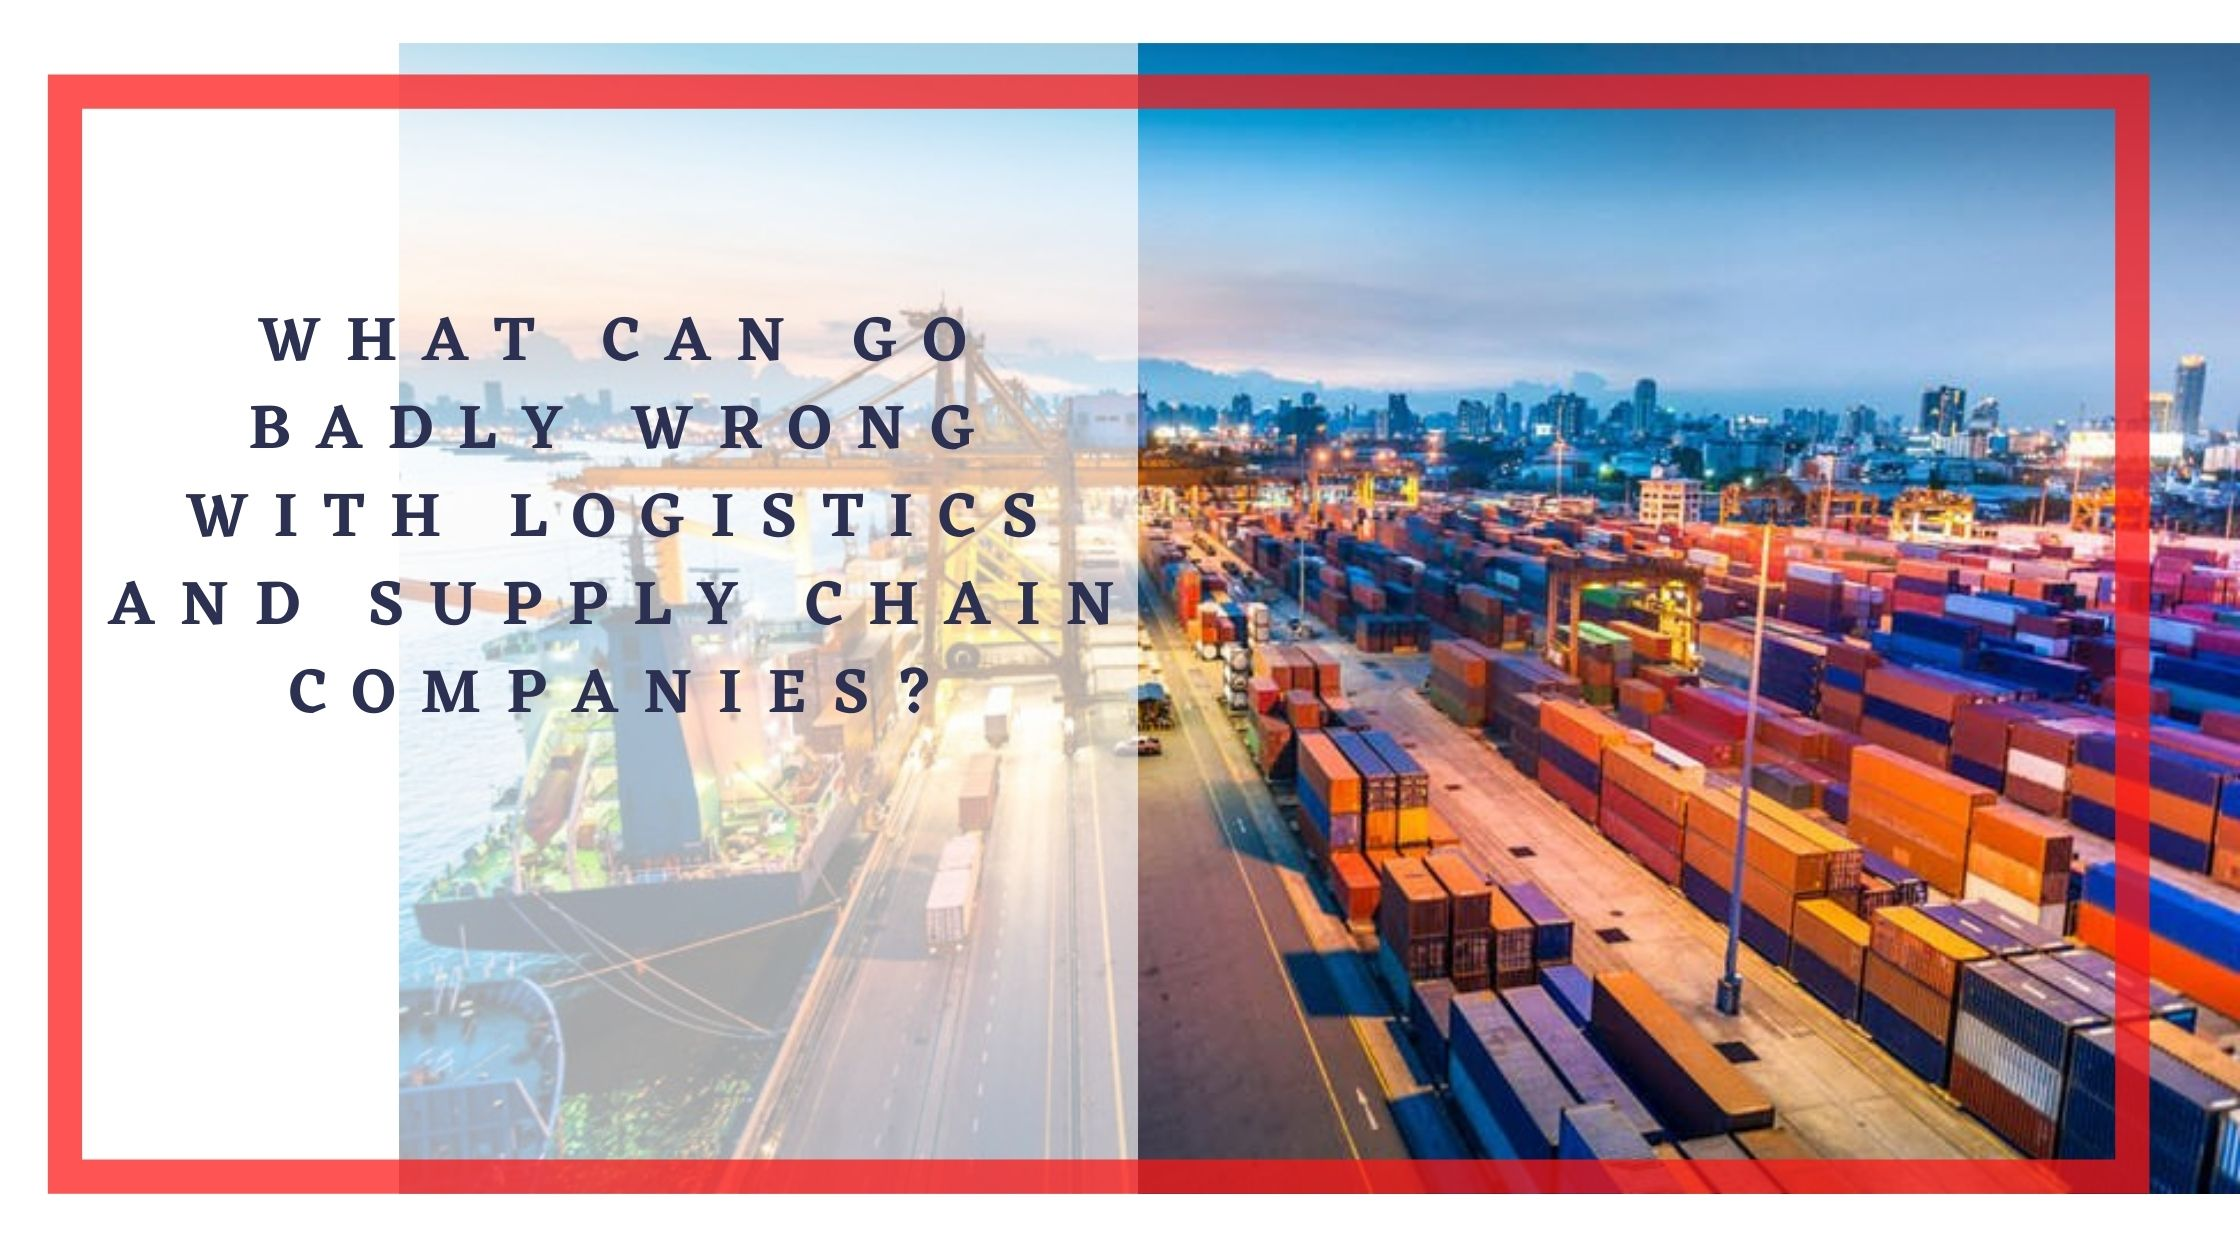 What can go badly wrong with logistics and supply chain companies?